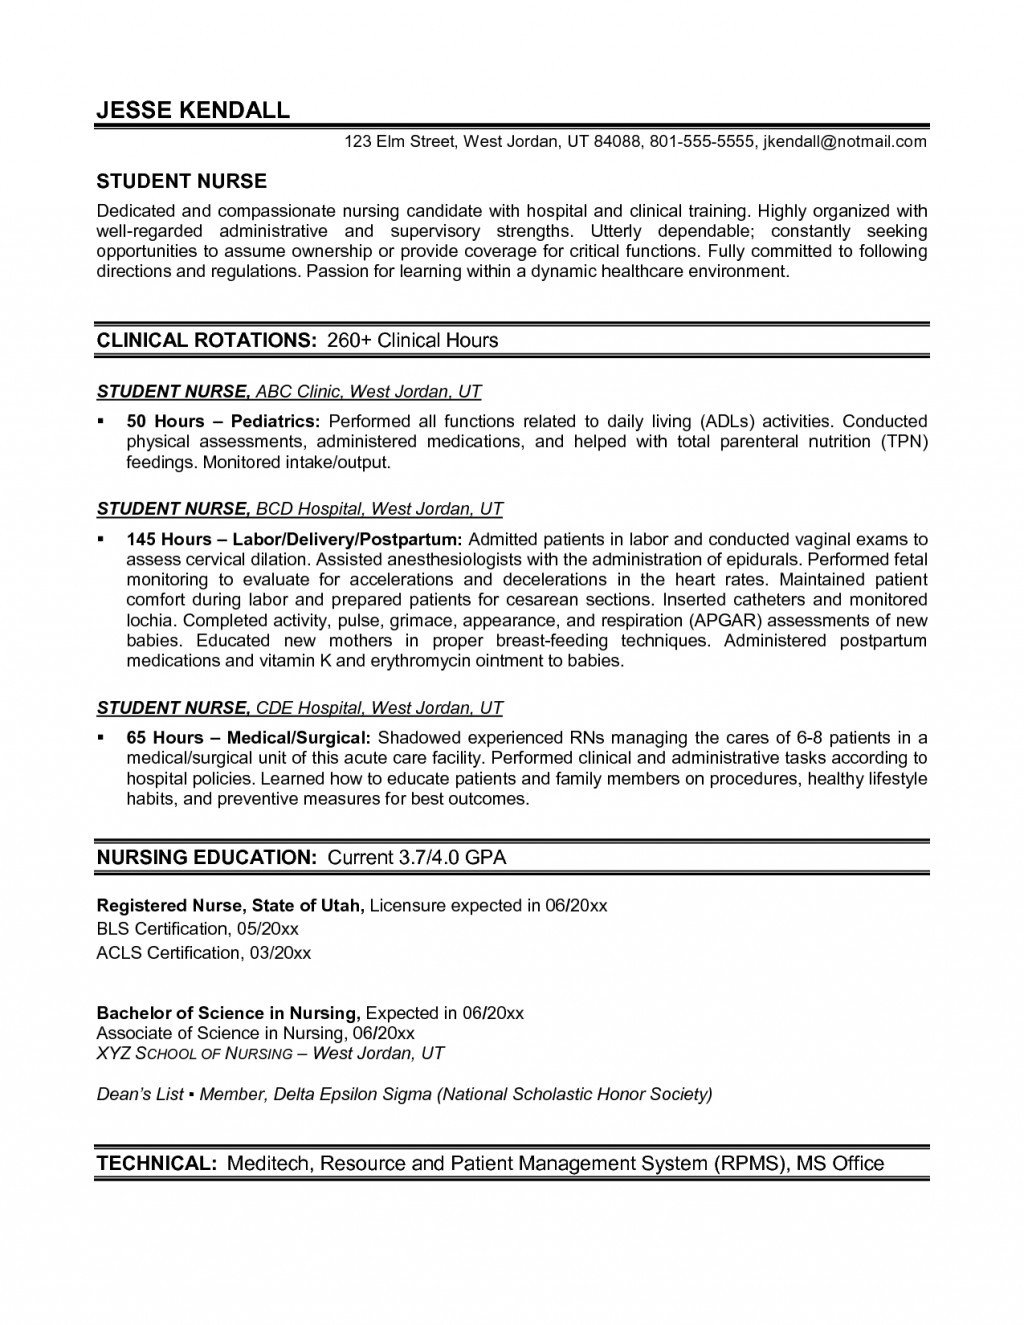 New Grad Nurse Resume Nursing Resume Objective New Grad Fresh 009 New Grad Nursing Resume Template Perfect Unique Hr Of Nursing Resume Objective New Grad 1 new grad nurse resume|wikiresume.com